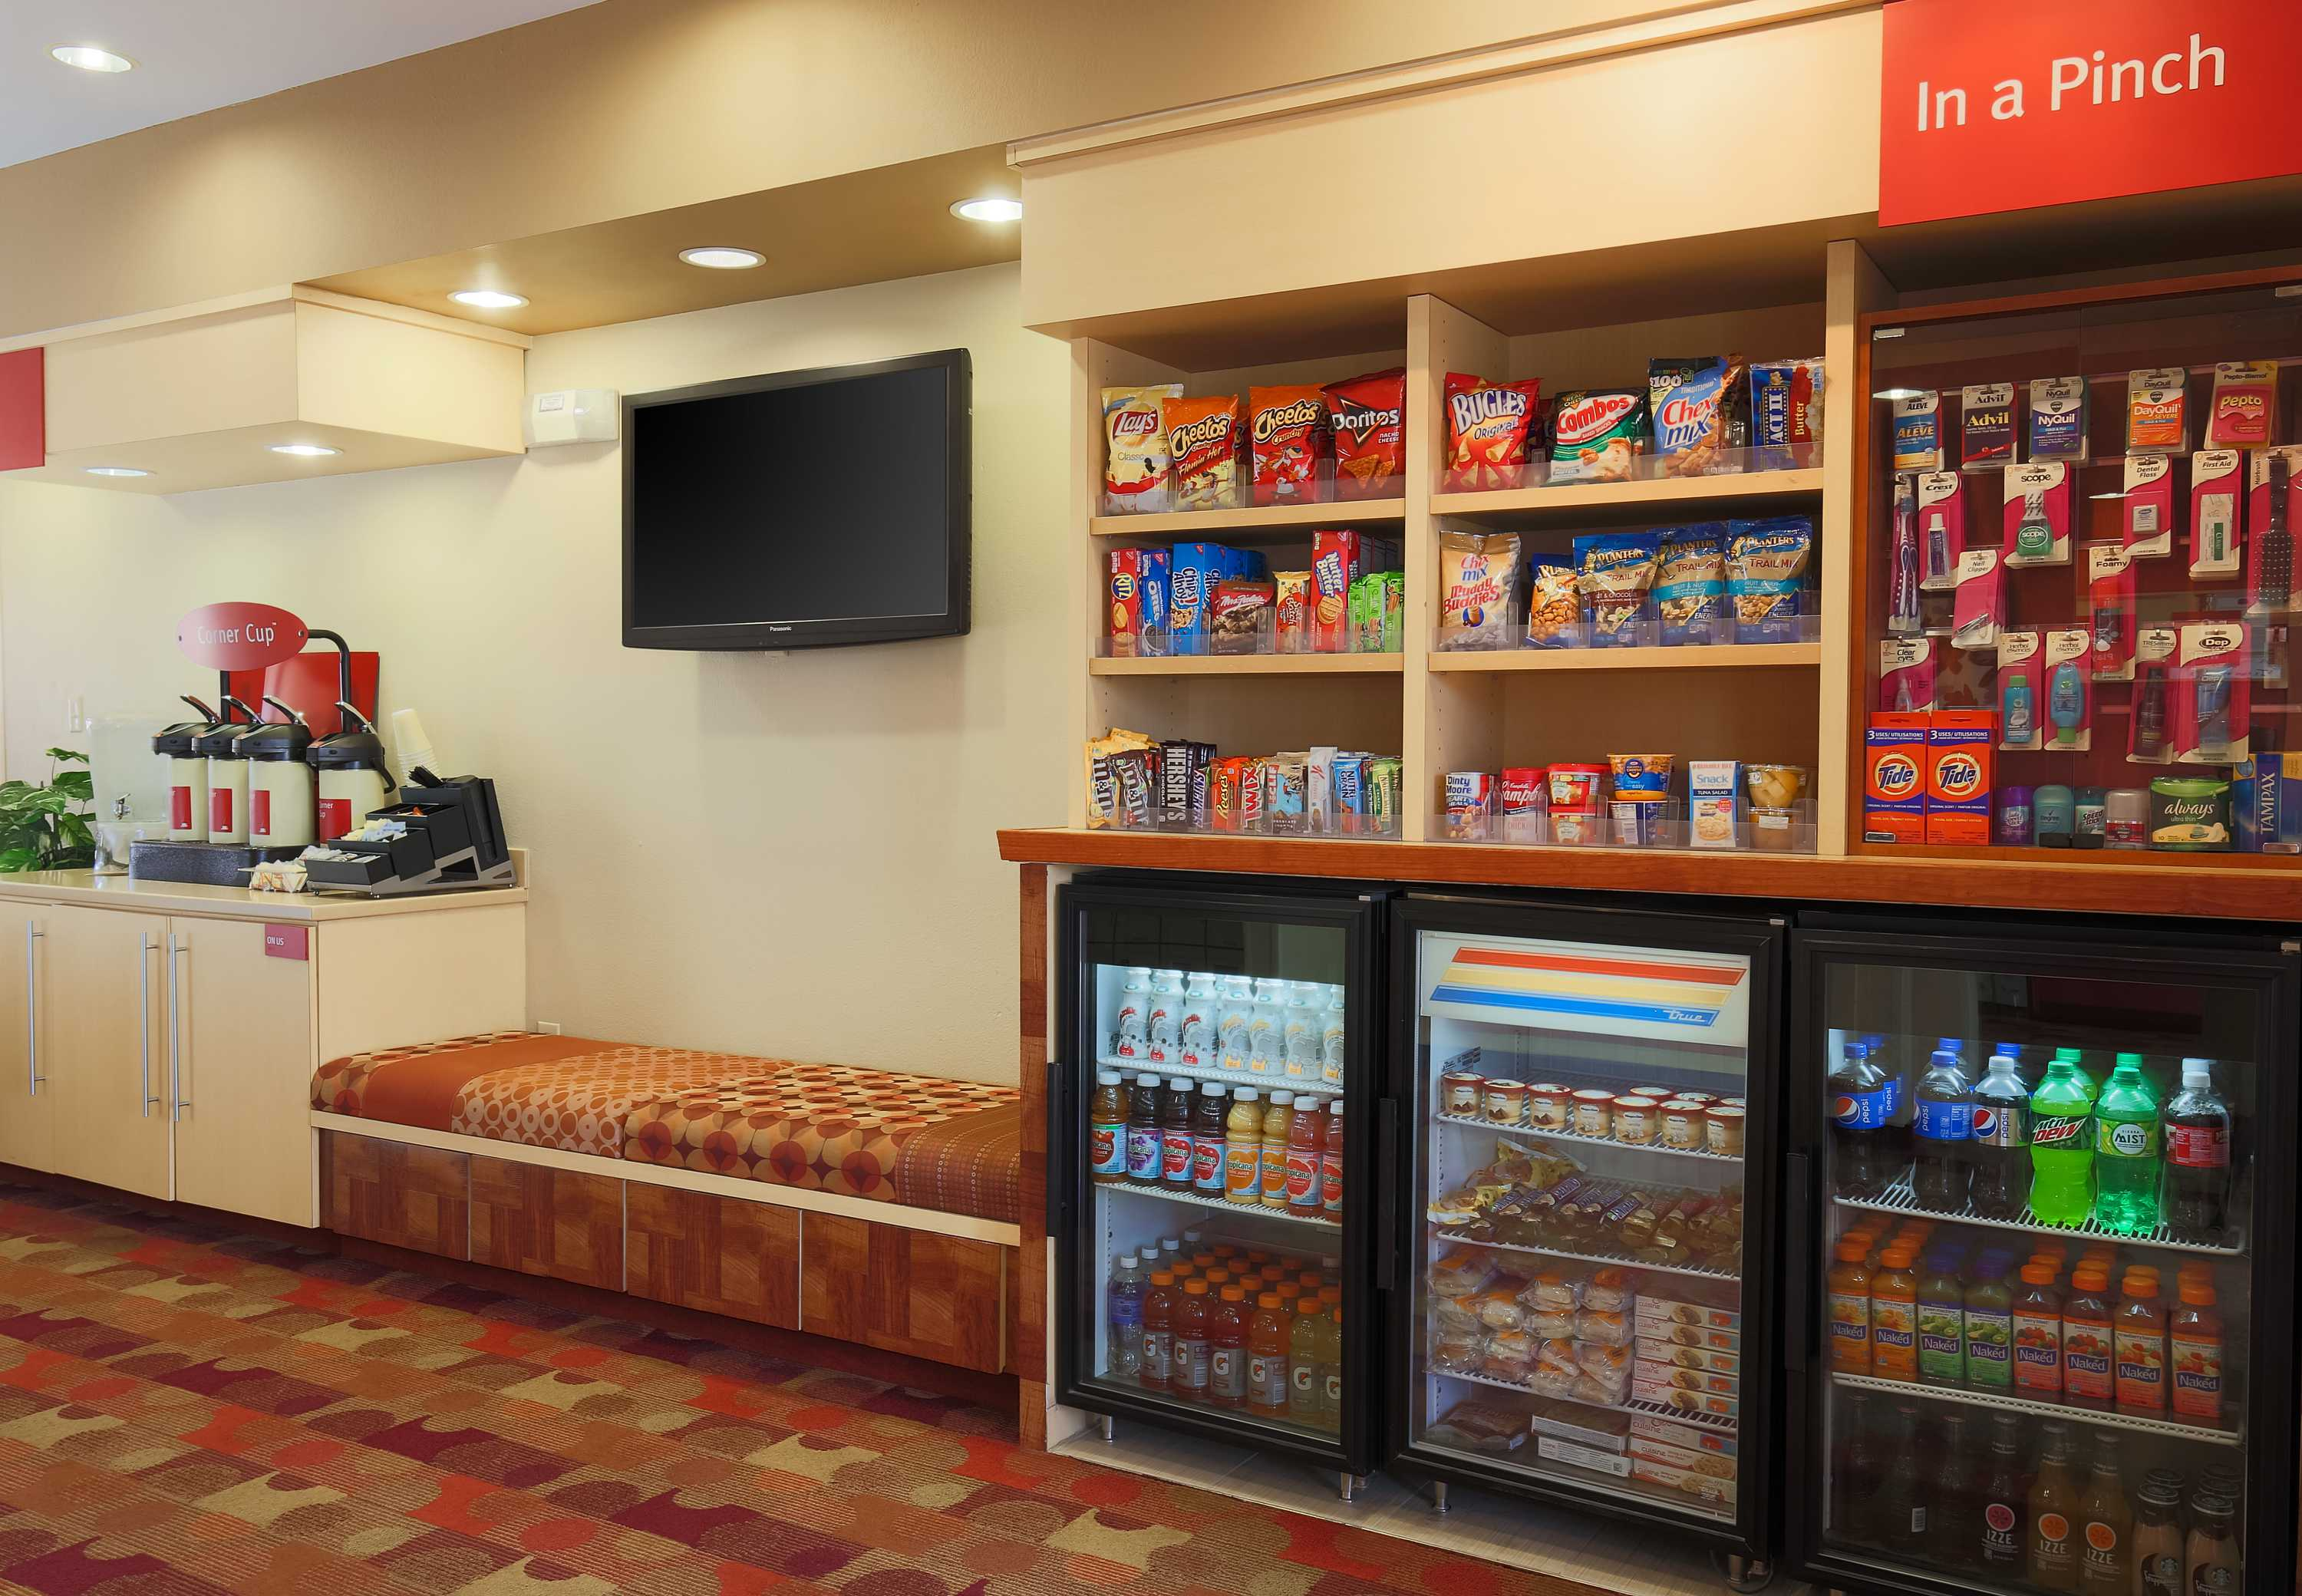 TownePlace Suites by Marriott Lubbock image 16